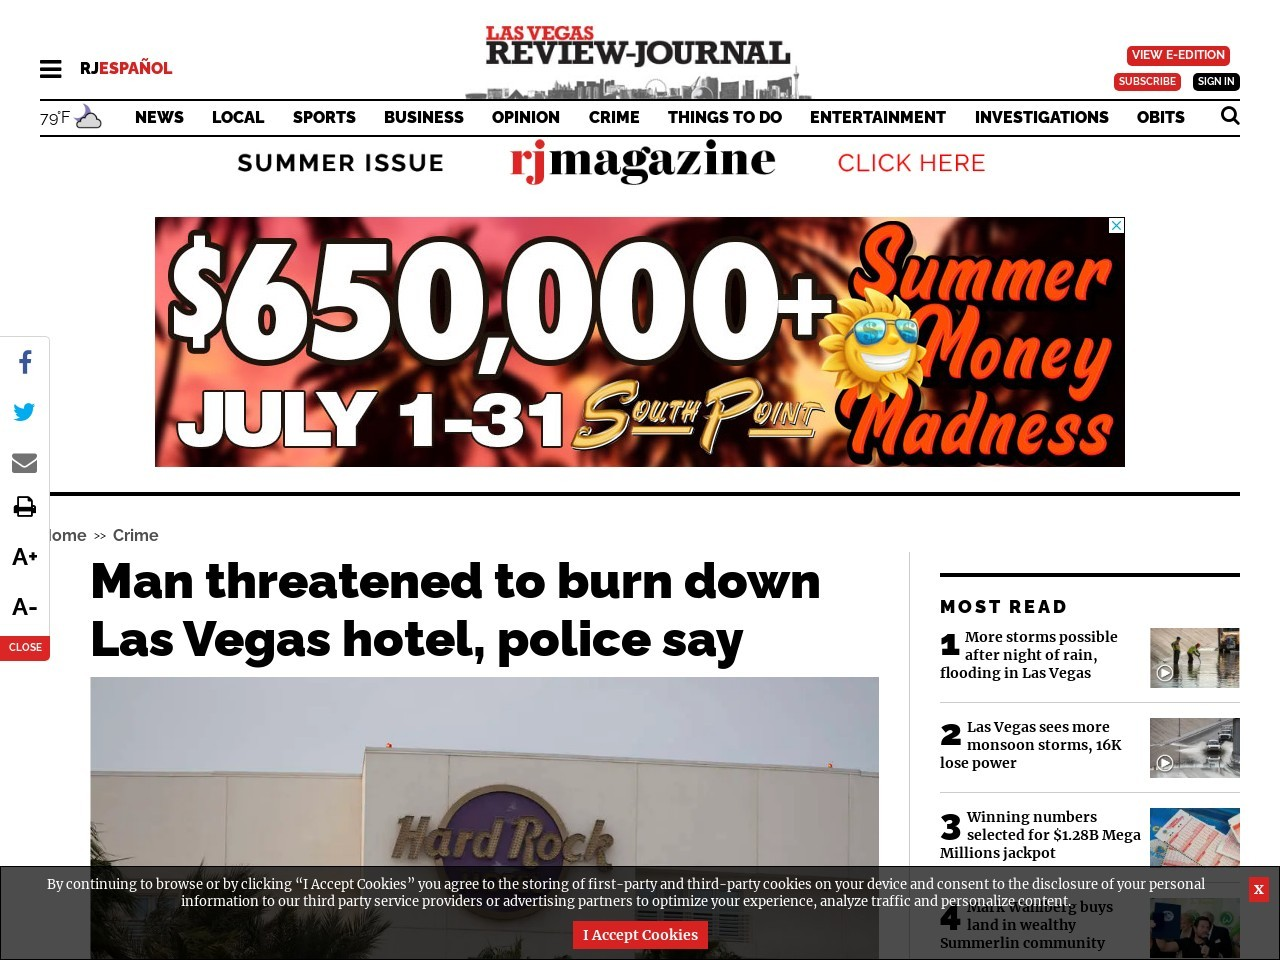 Man threatened to burn down Las Vegas hotel, police say